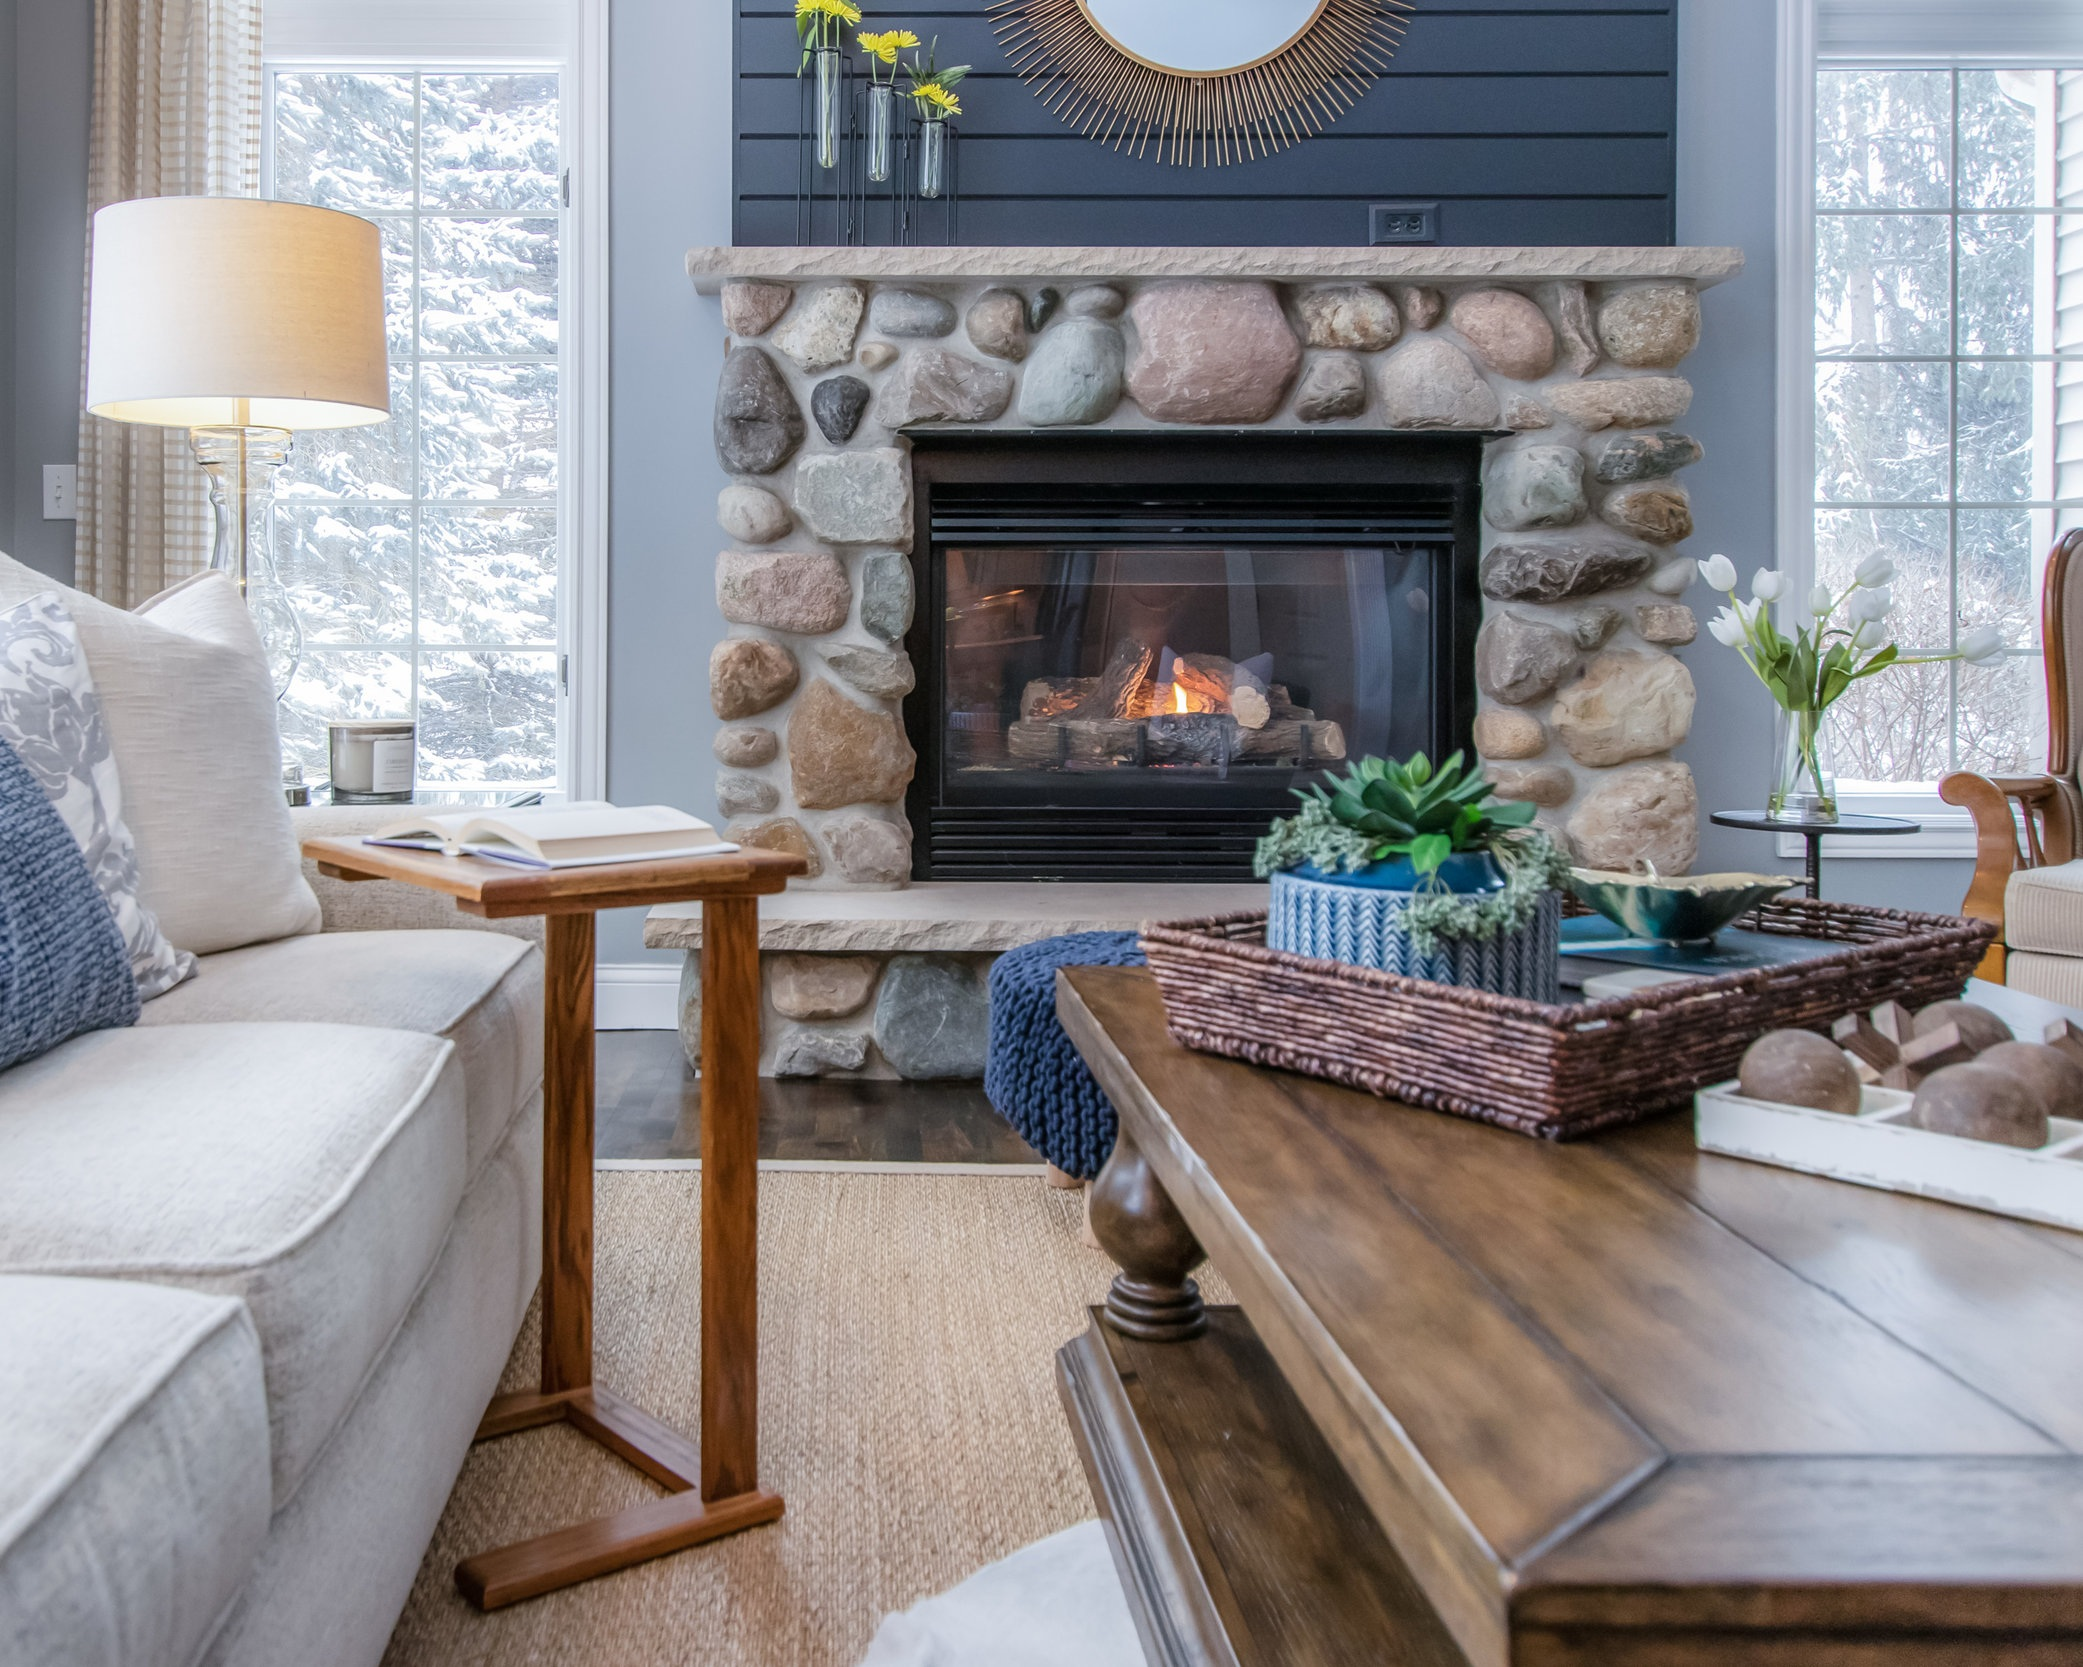 LOST CREEK RESIDENCE - A transitional remodel featuring layers of textural elements and a mix of furniture, old and new.